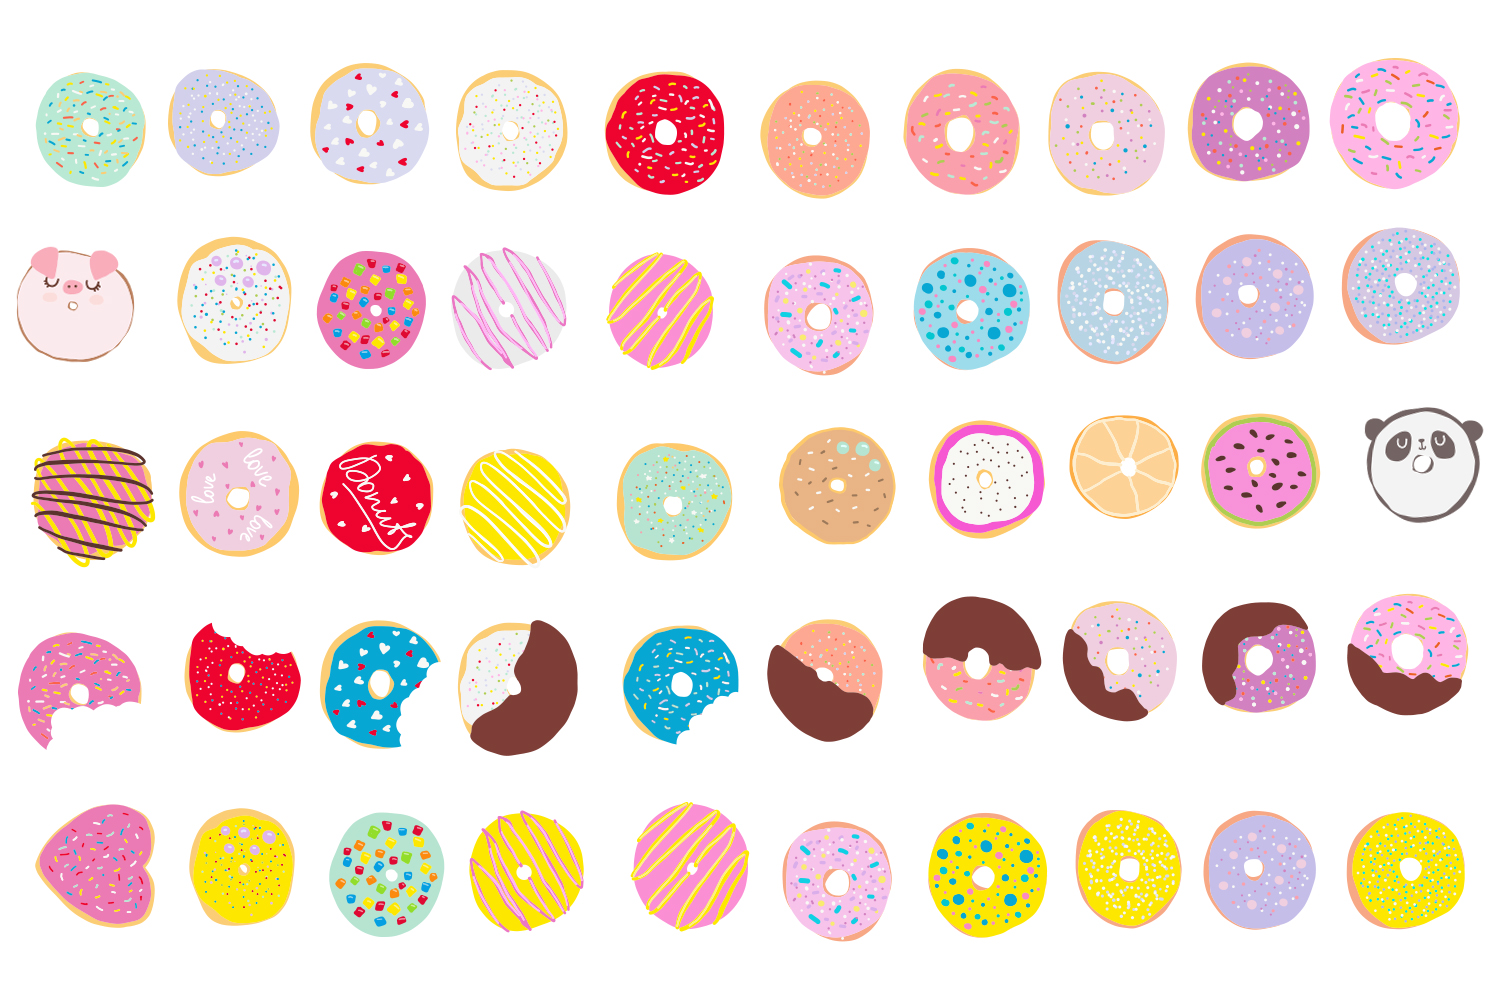 Delicious Donuts example image 2